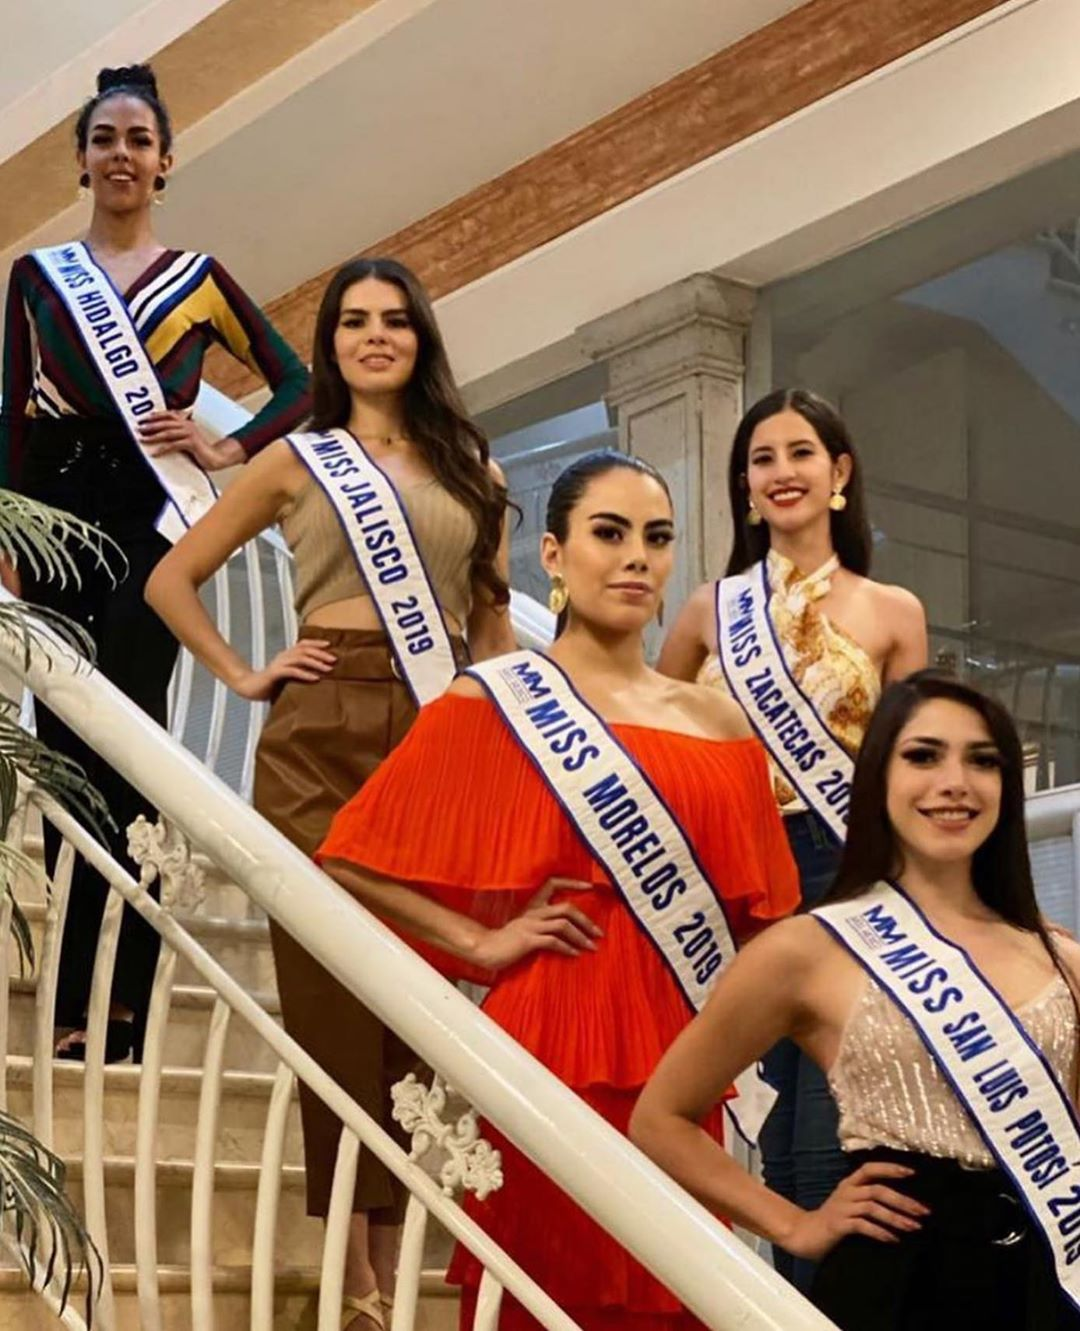 candidatas a miss mexico 2020, final: 31 oct. - Página 3 Jm4cuwab